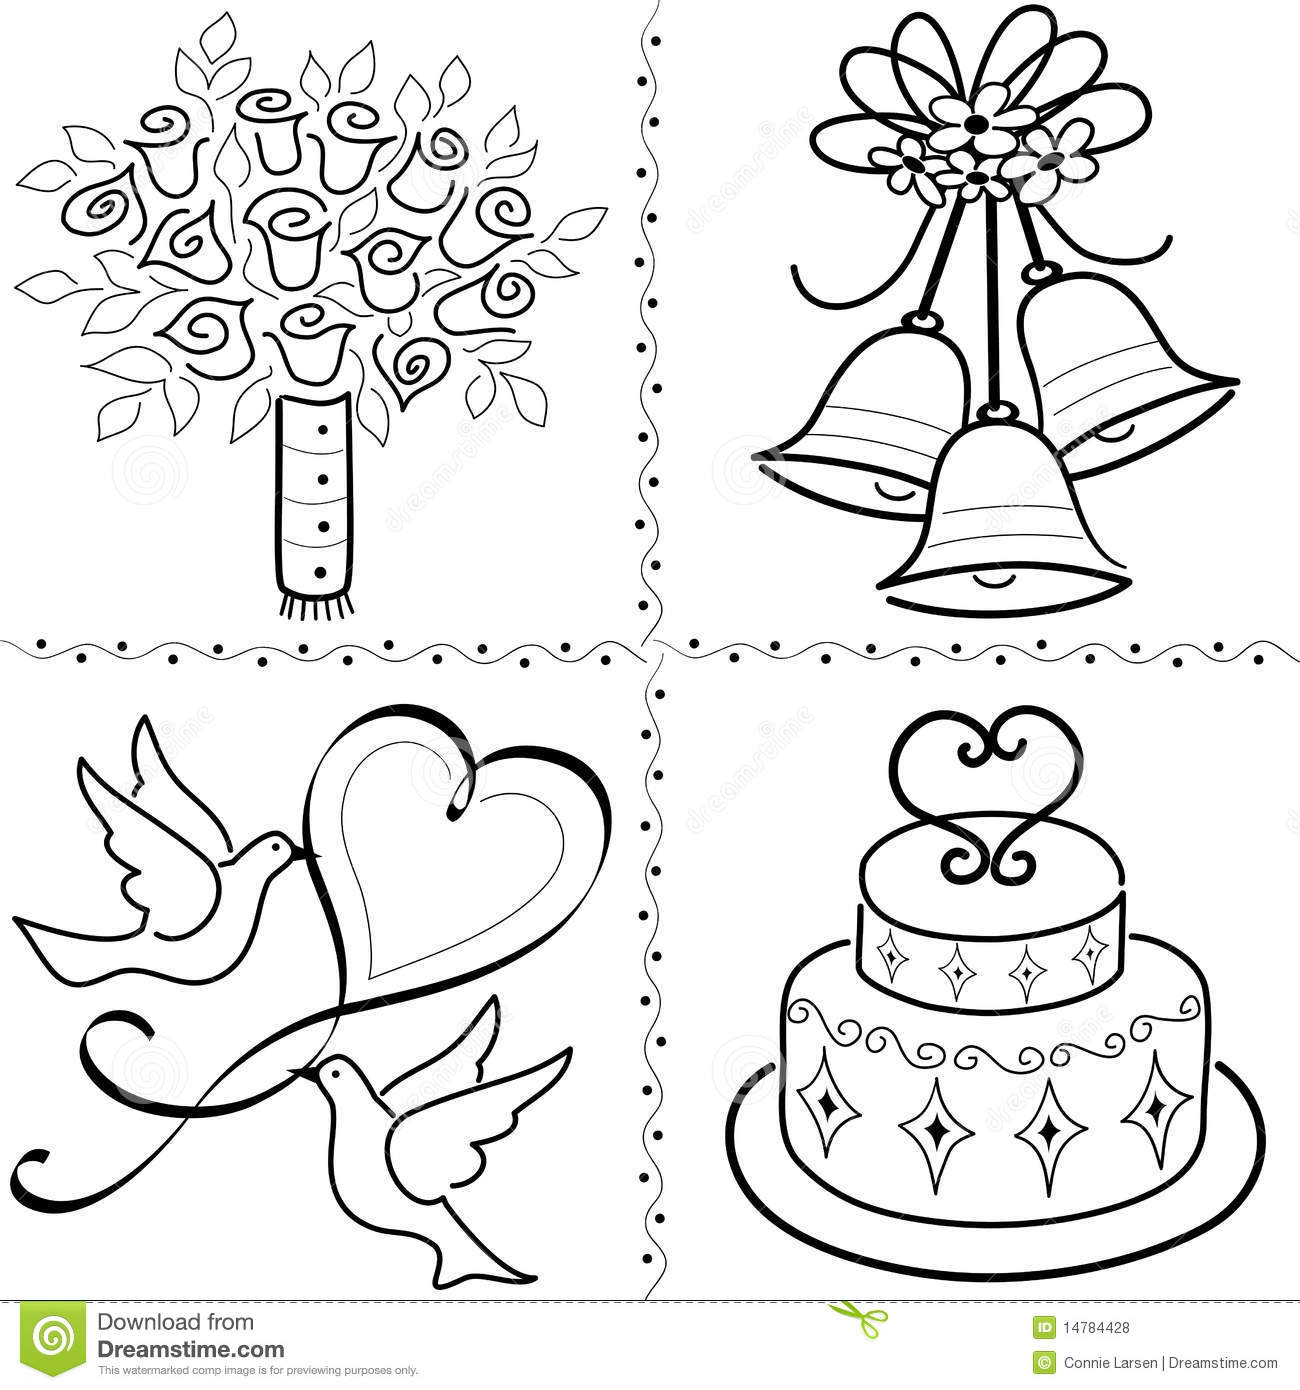 Wedding clipart images free download clipart Wedding clipart images free download - ClipartFest clipart